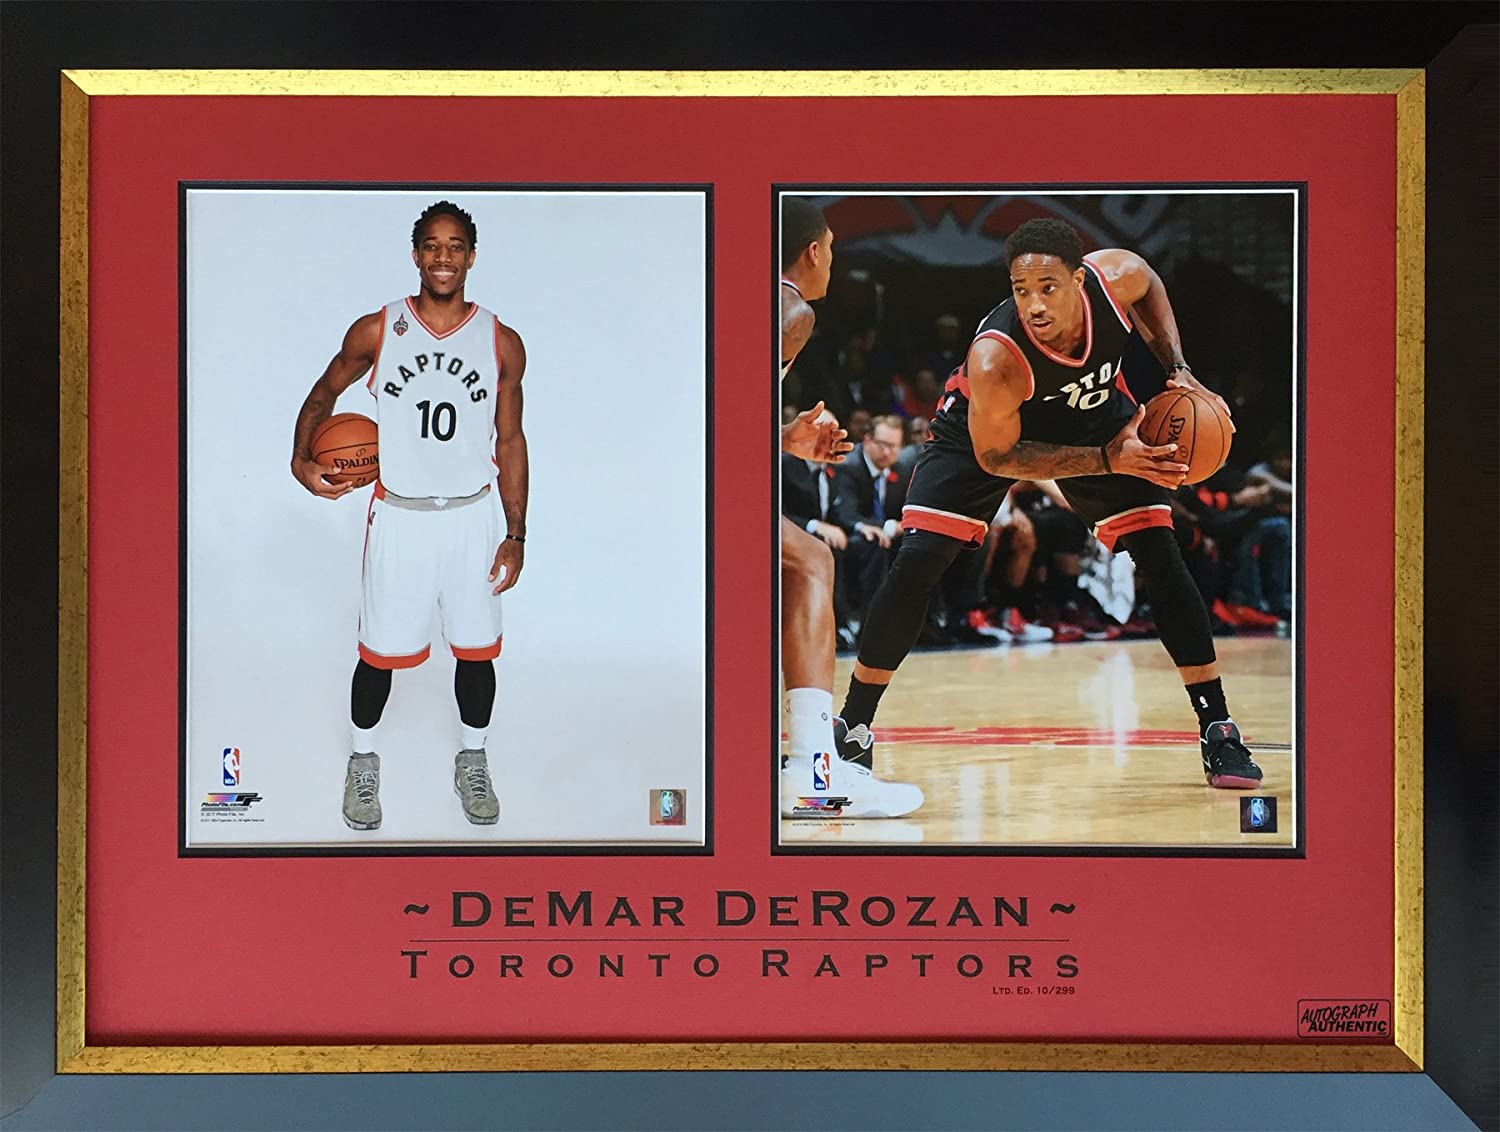 DeMar DeRozan Limited Edition 10 of 299 Framed Photos  Tgoldnto Raptors